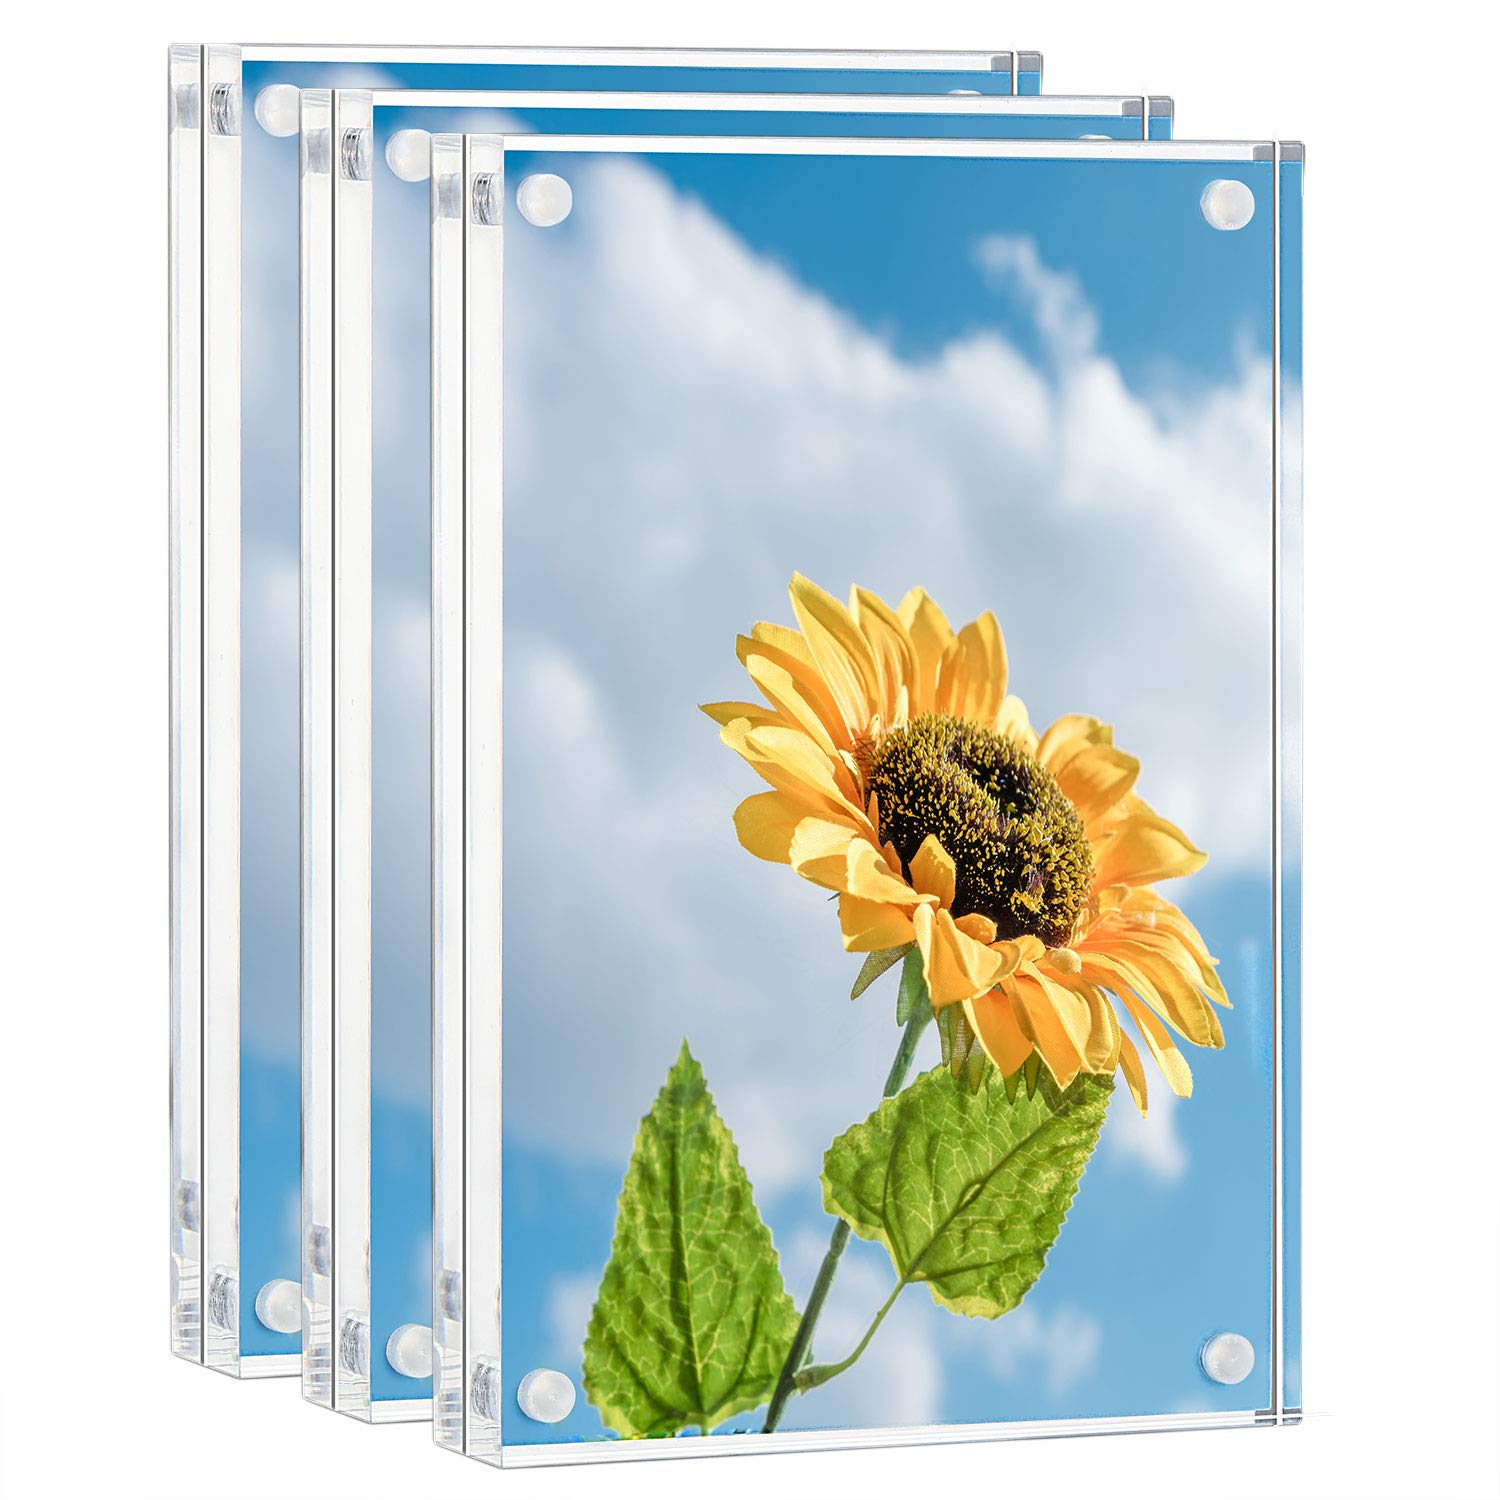 ONE WALL Acrylic Picture Frame Set, 3 Pcs 5x7 Inch Magnetic Clear Photo Frame Free Standing for Tabletop Desktop Display